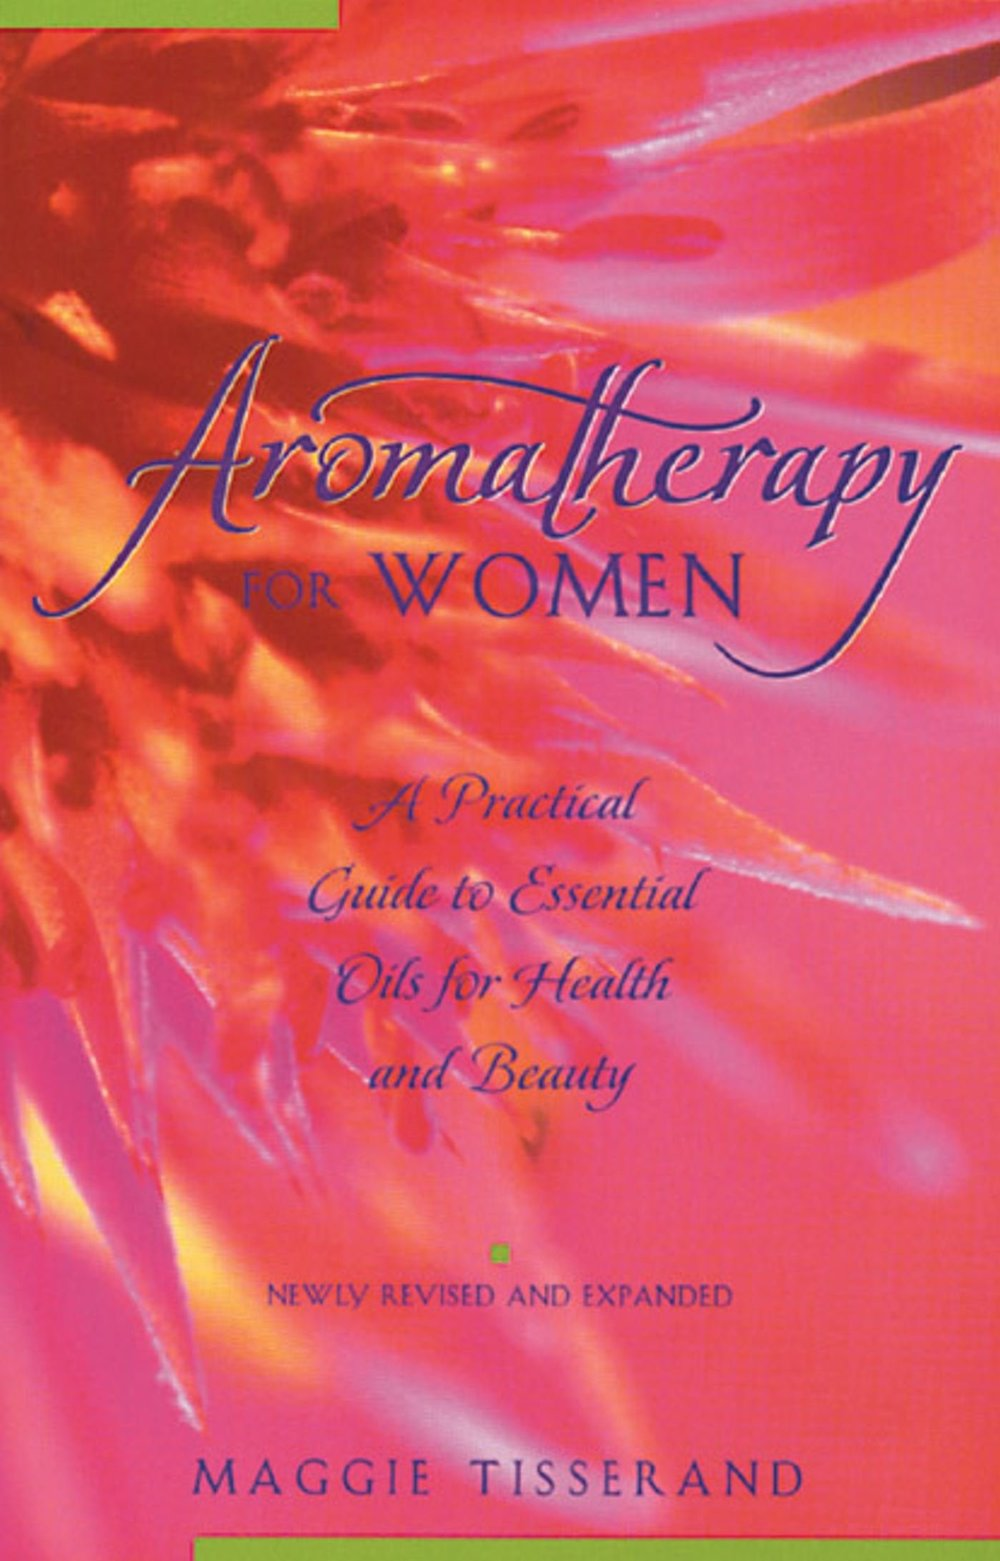 aromatherapy for women tisserand.jpg